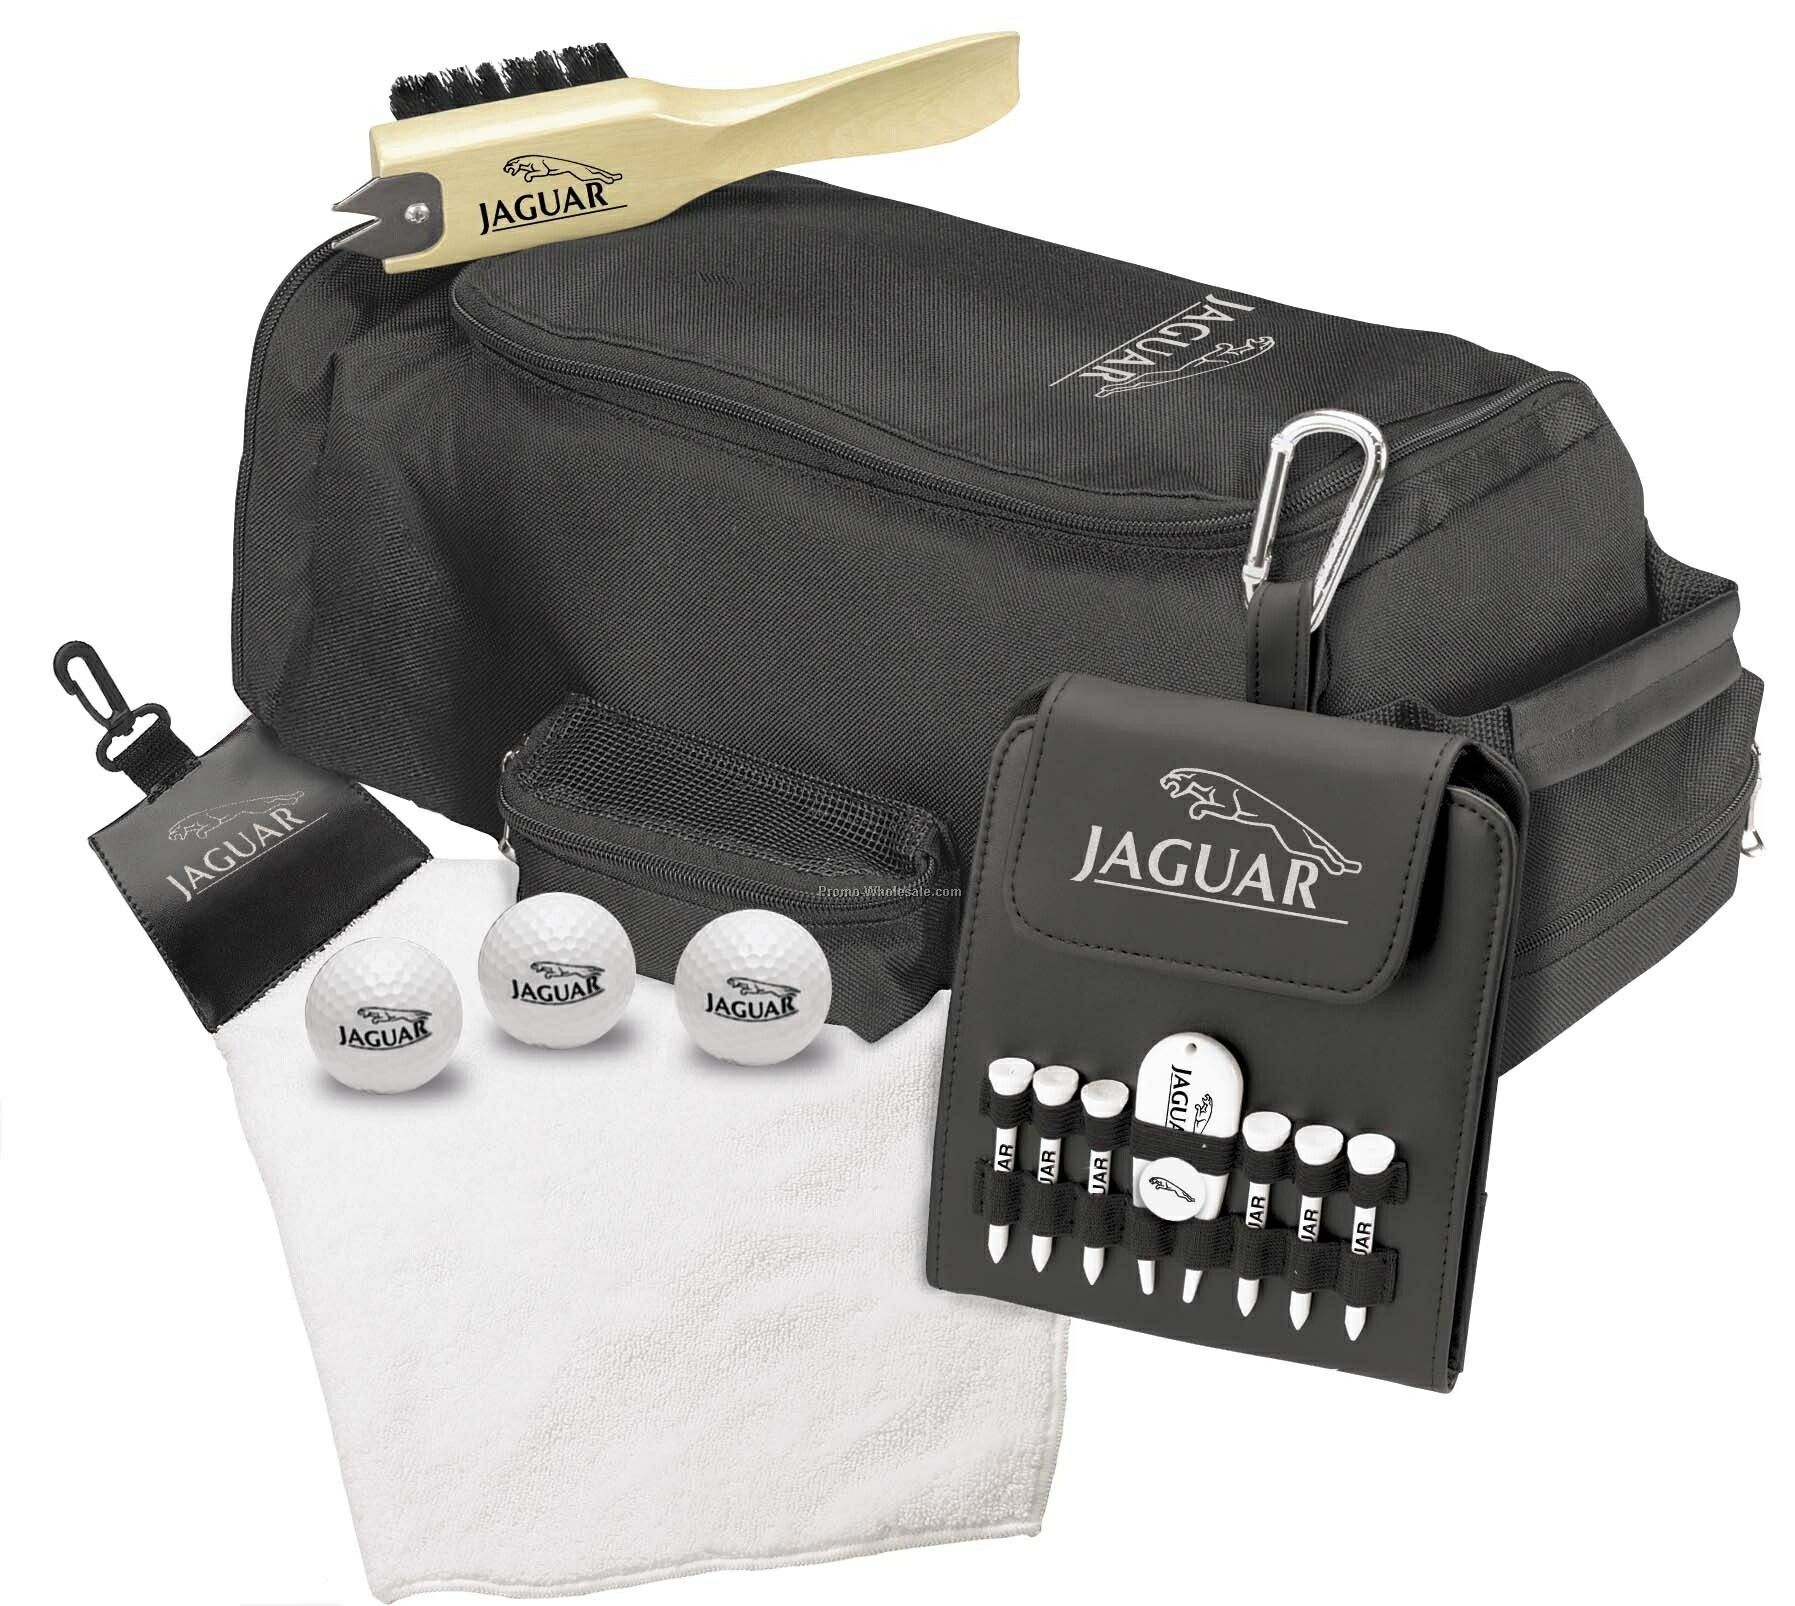 Tee Off Club House Travel Kit With Noodle Soft Golf Balls